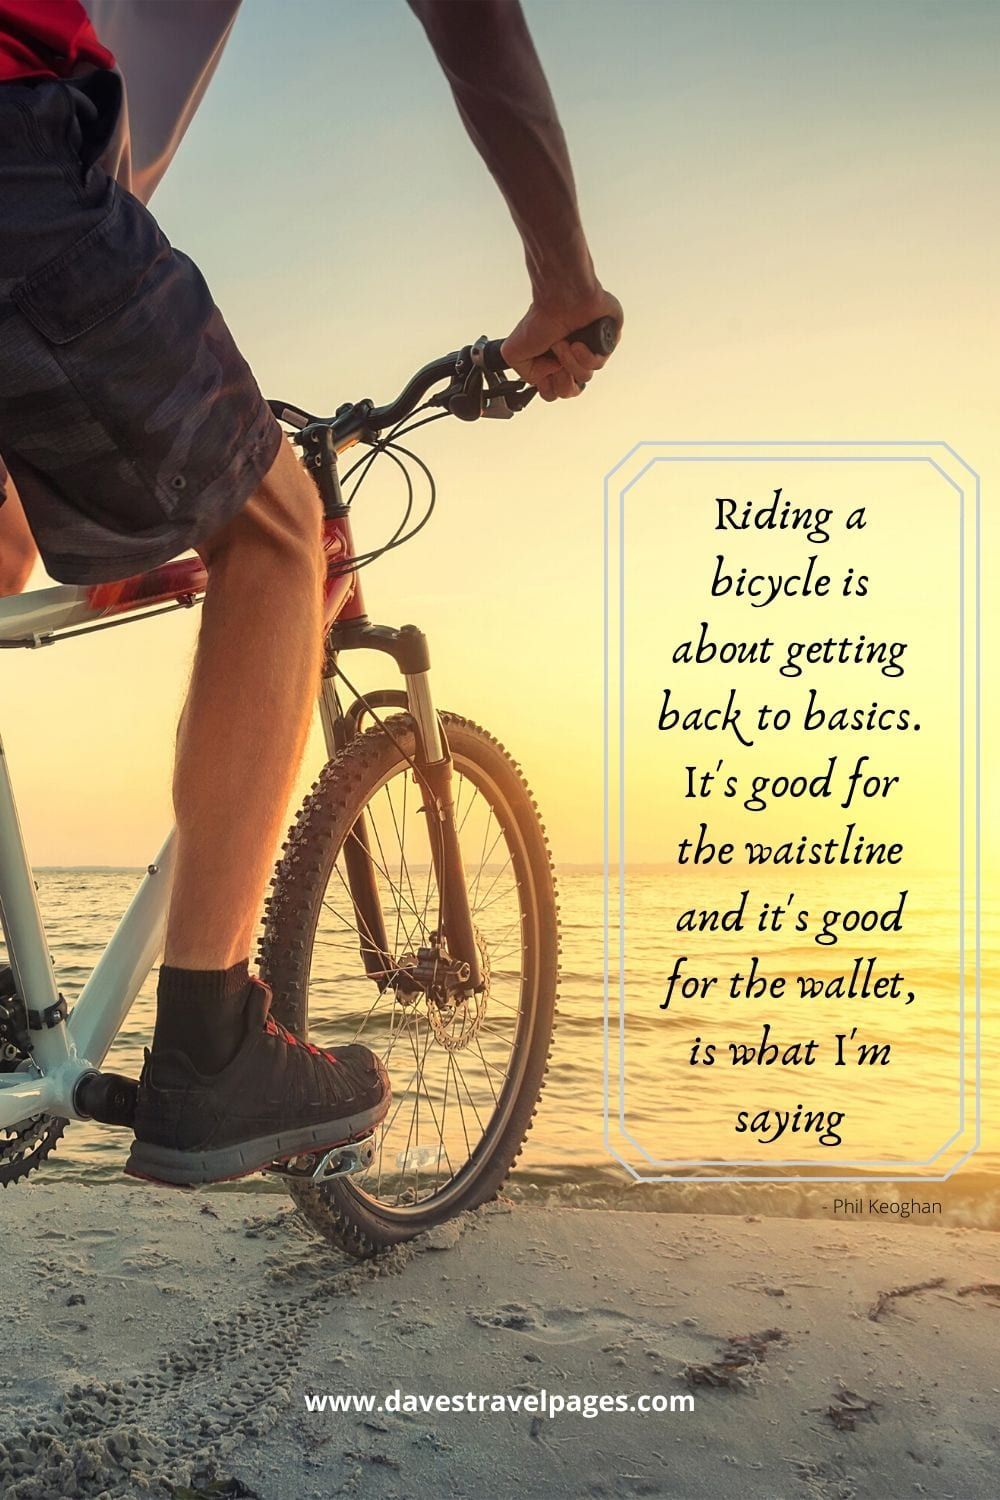 Bicycle riding quotes - Riding a bicycle is about getting back to basics. It's good for the waistline and it's good for the wallet, is what I'm saying. Phil Keoghan